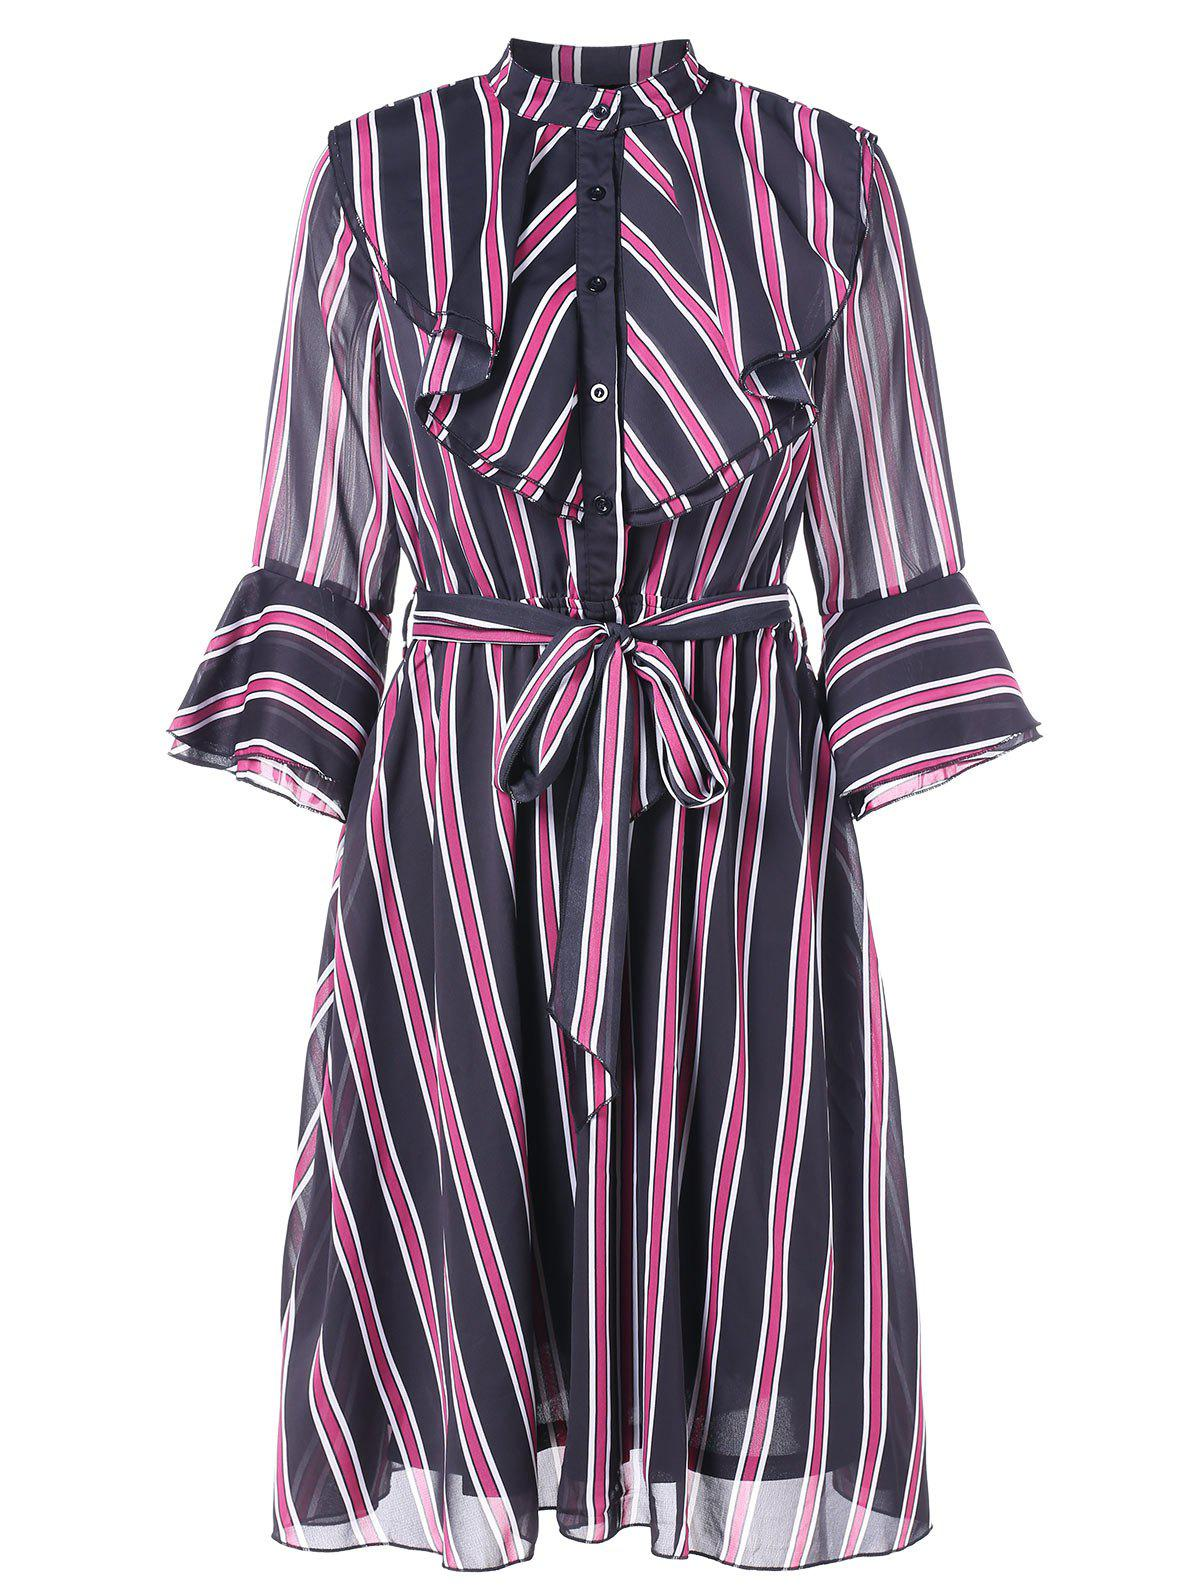 Chic Vertical Stripe Flounce Trim Dress